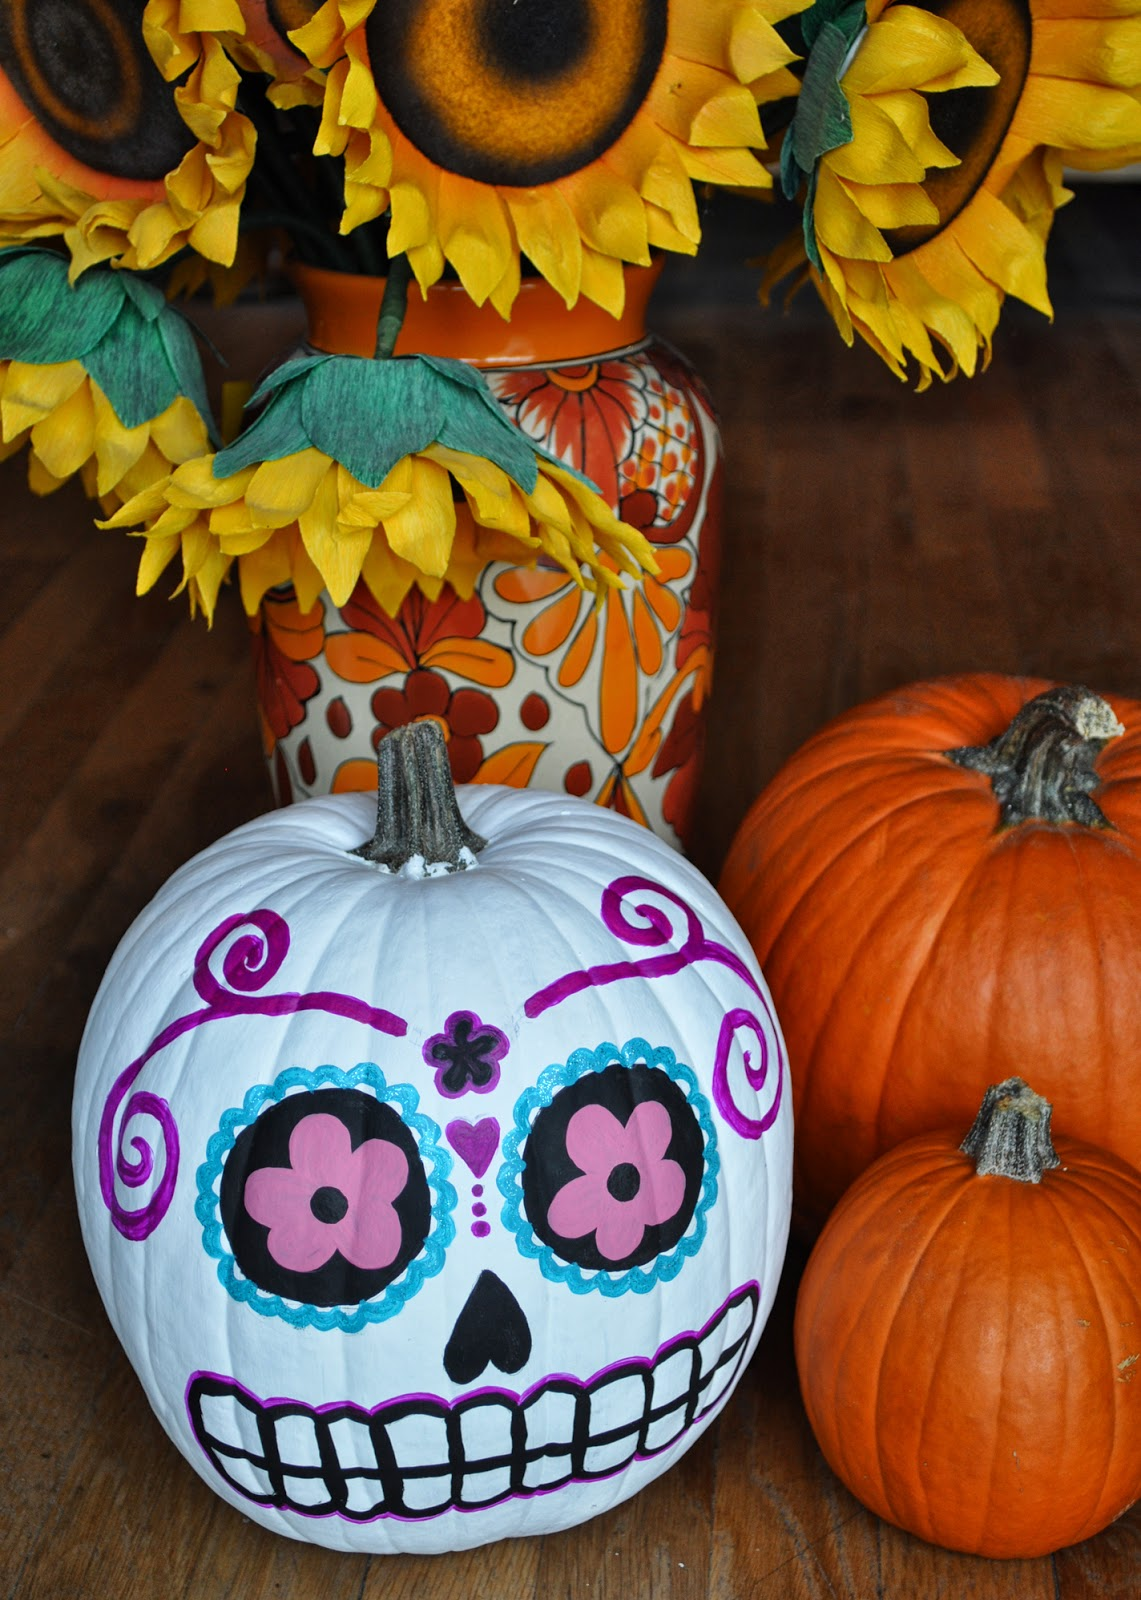 Artelexia day of the dead diy 18 sugar skull pumpkins - Cute pumpkin painting ideas ...